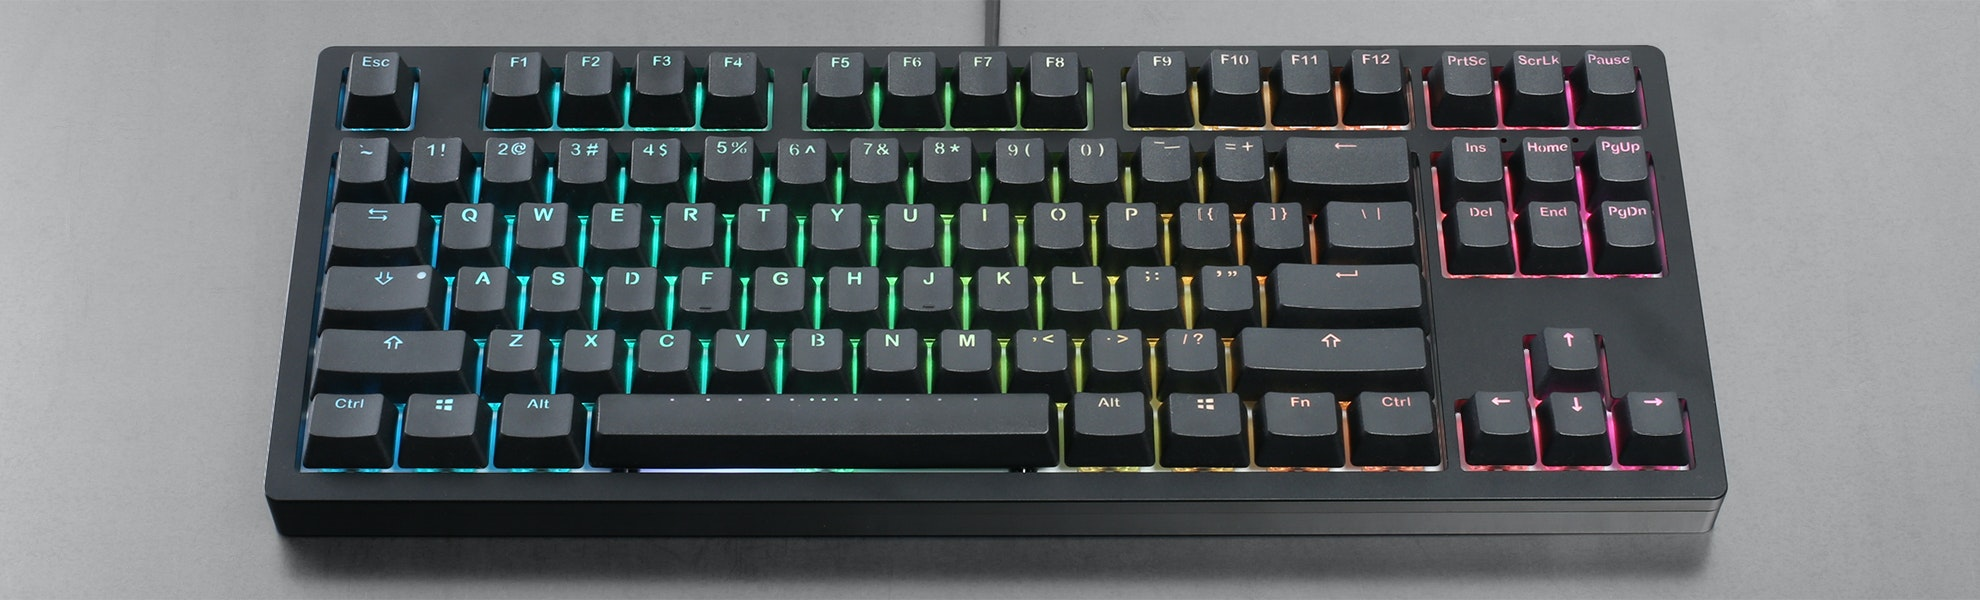 IKBC MF-87 RGB Mechanical Keyboard